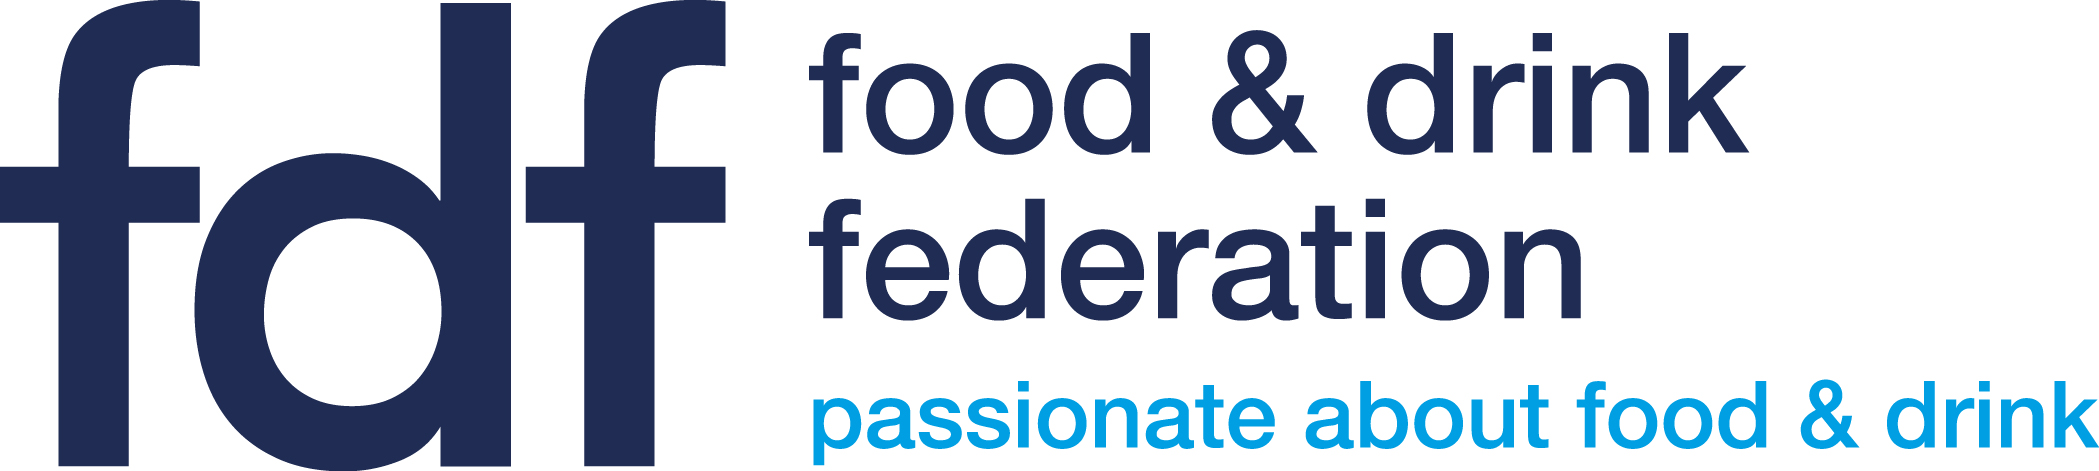 Food & Drink Federation